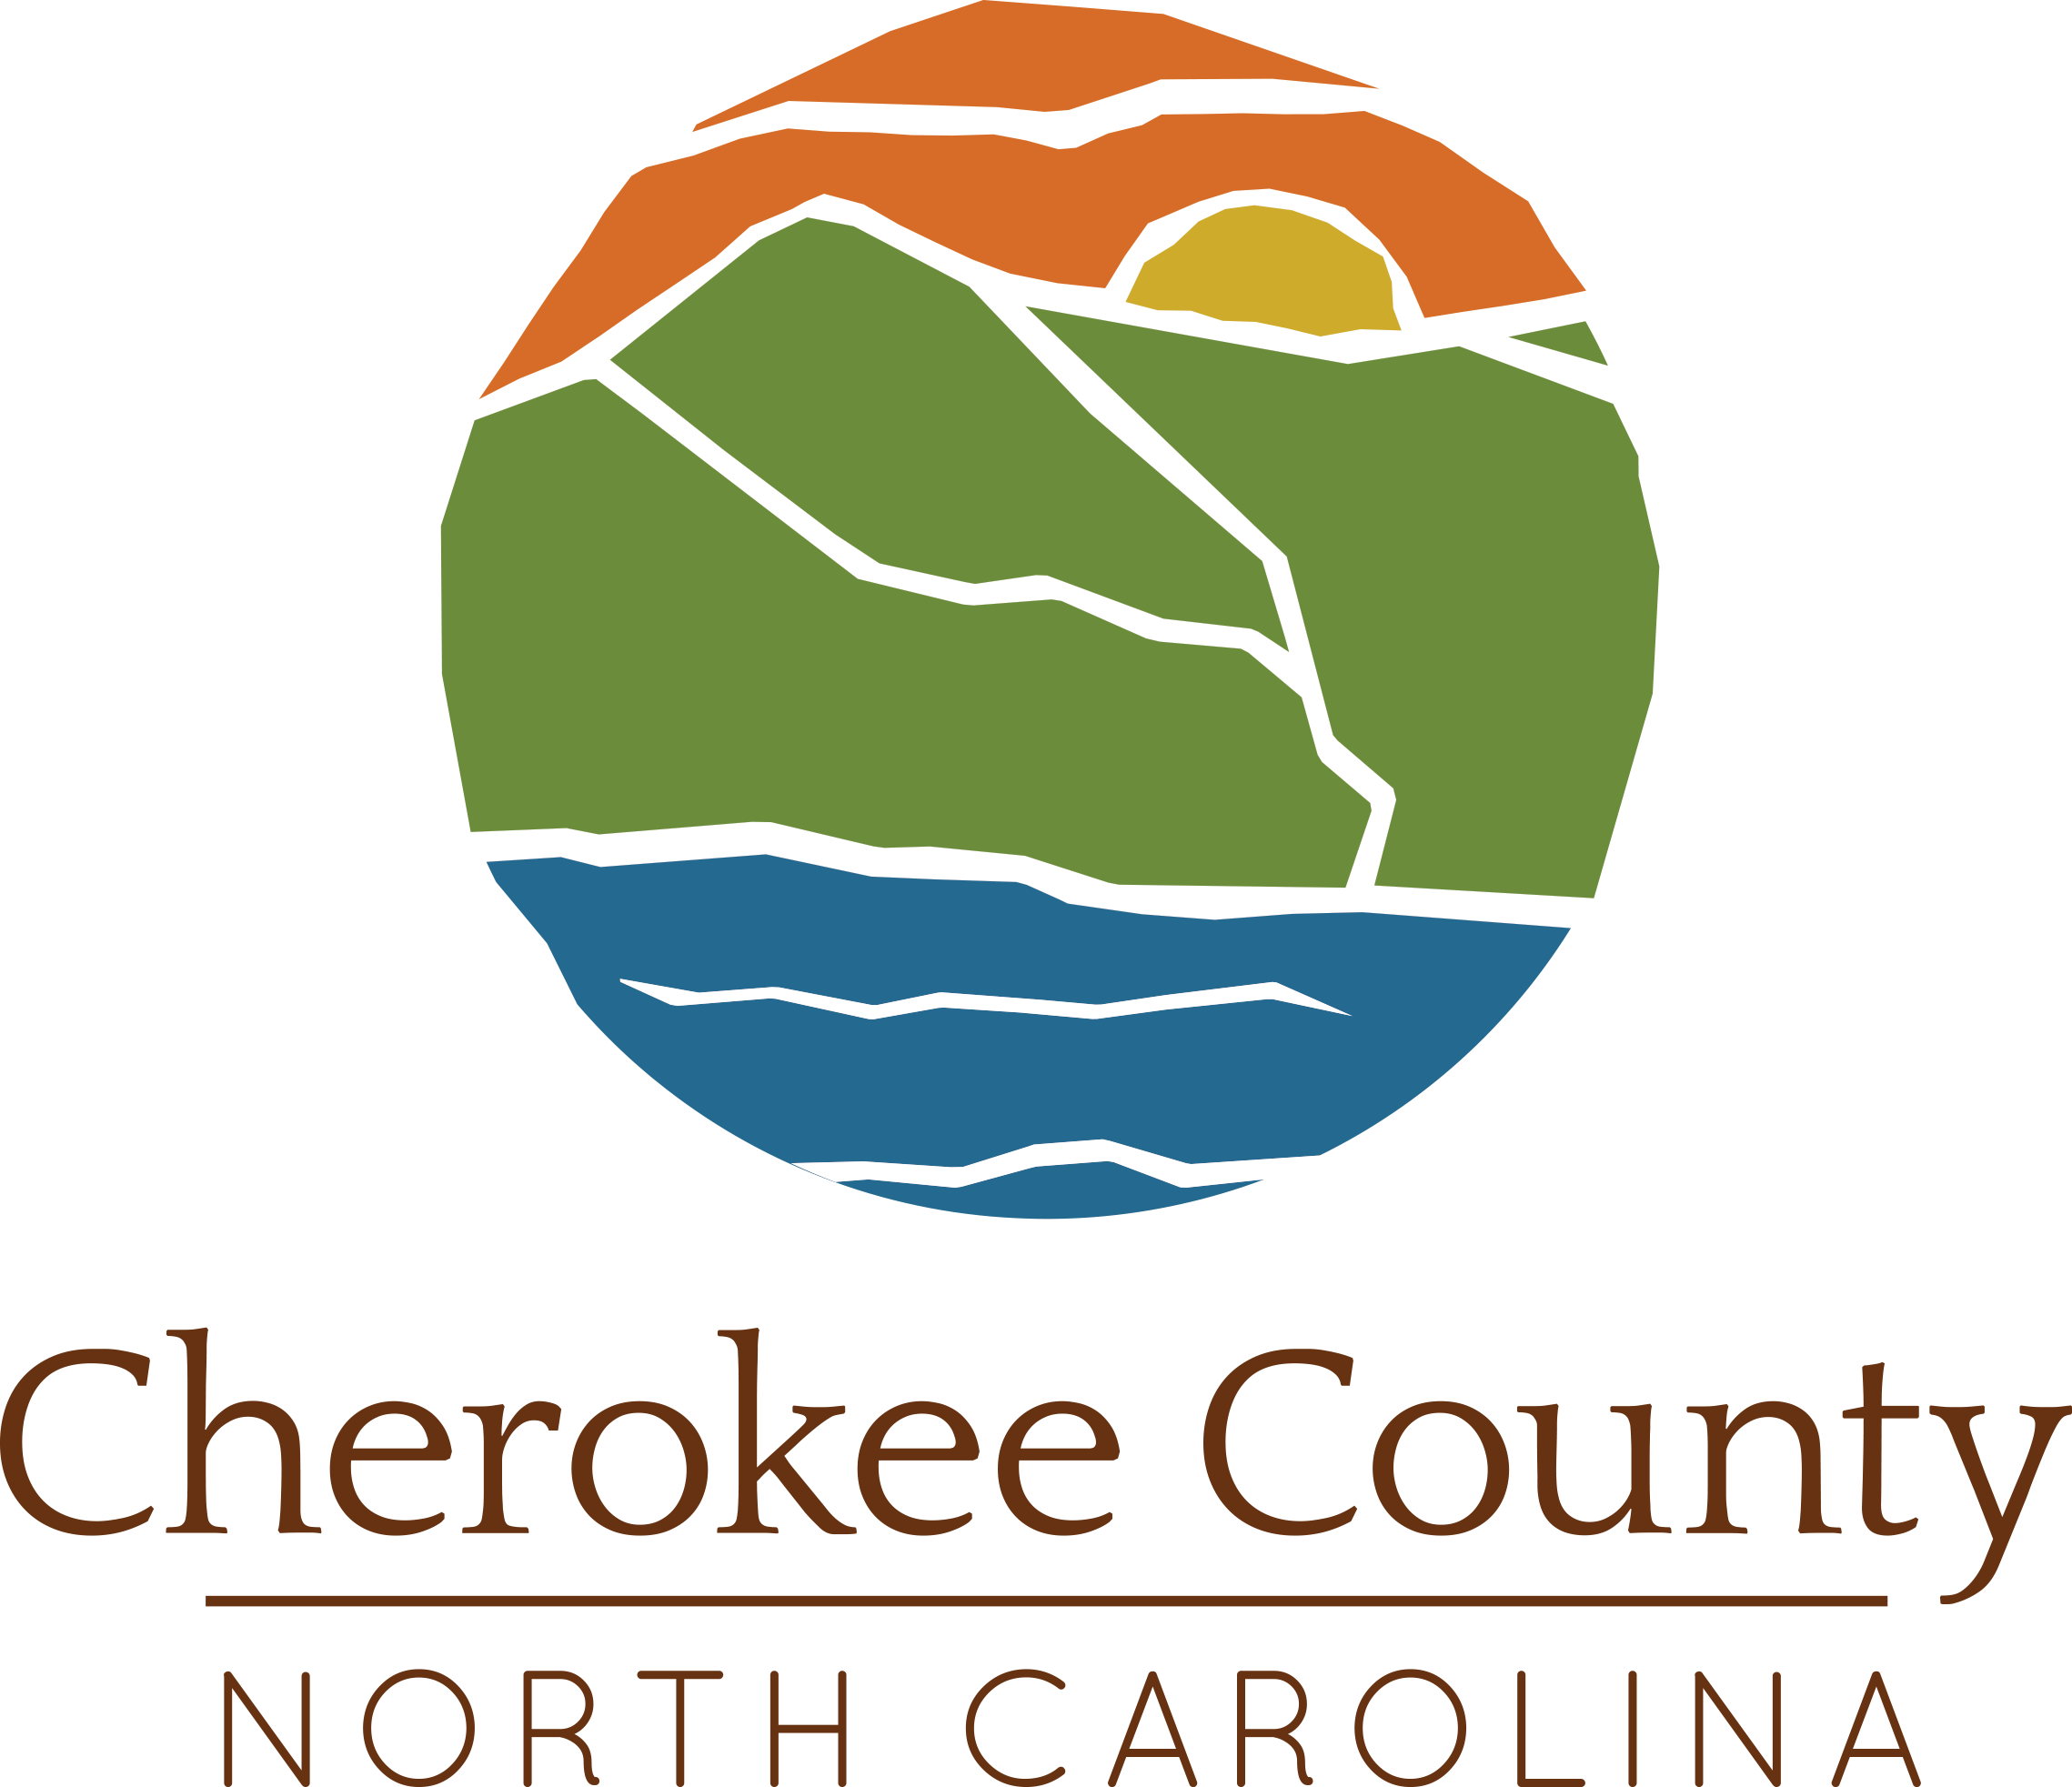 Cherokee County Tourism Development Authority